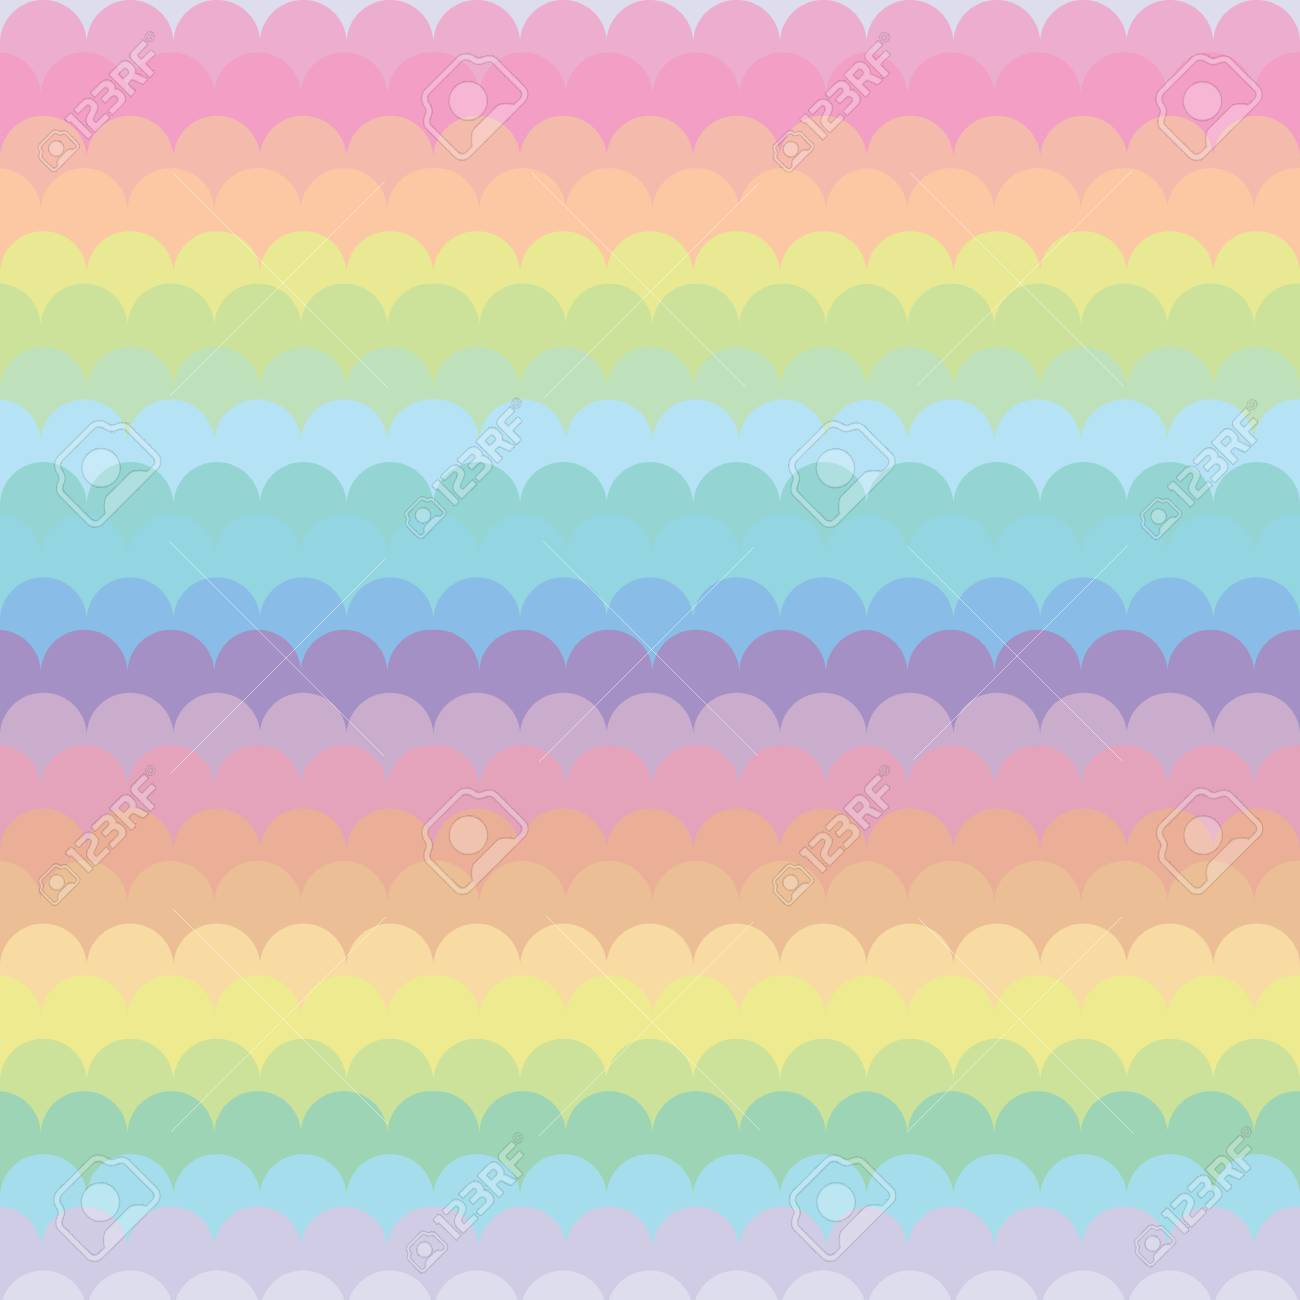 Vector Illustration Pastel Rainbow Horizontal Stripes And Waves